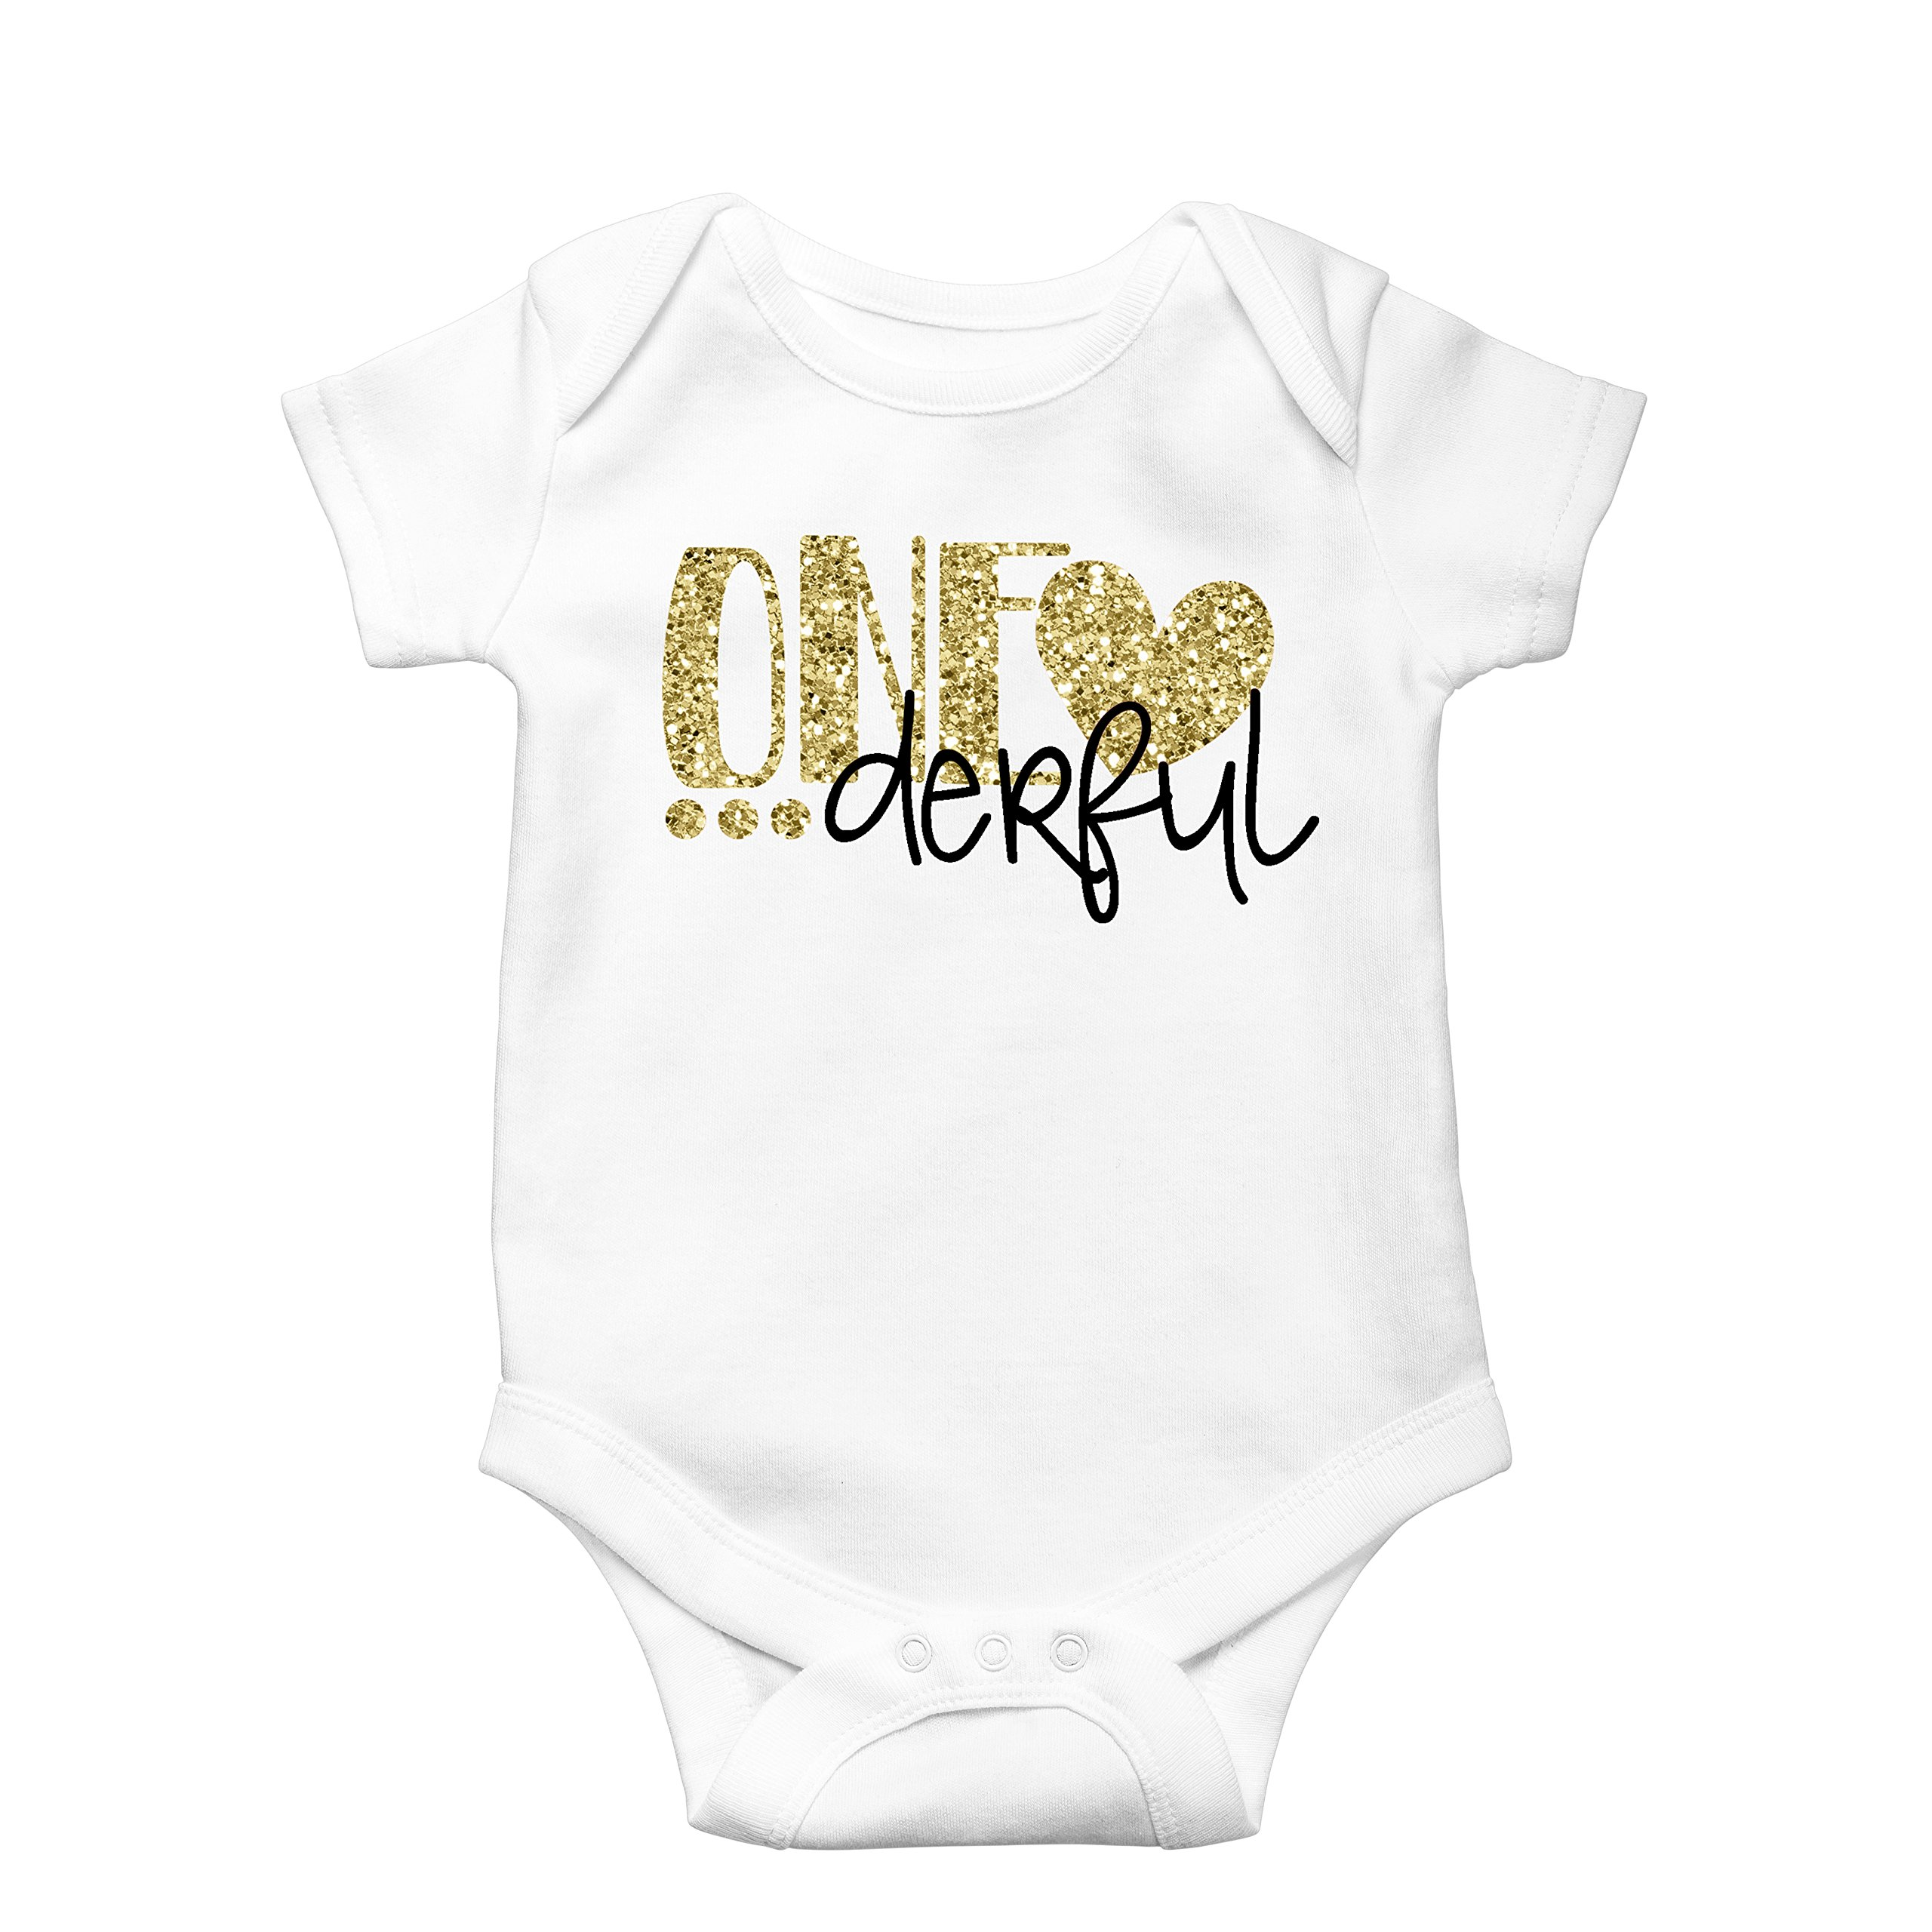 Girls One-Derful 1st Birthday Onesie Glitter Gold Baby onesie for 1st Birthday Outfit,12-18 months short sleeve,Gold